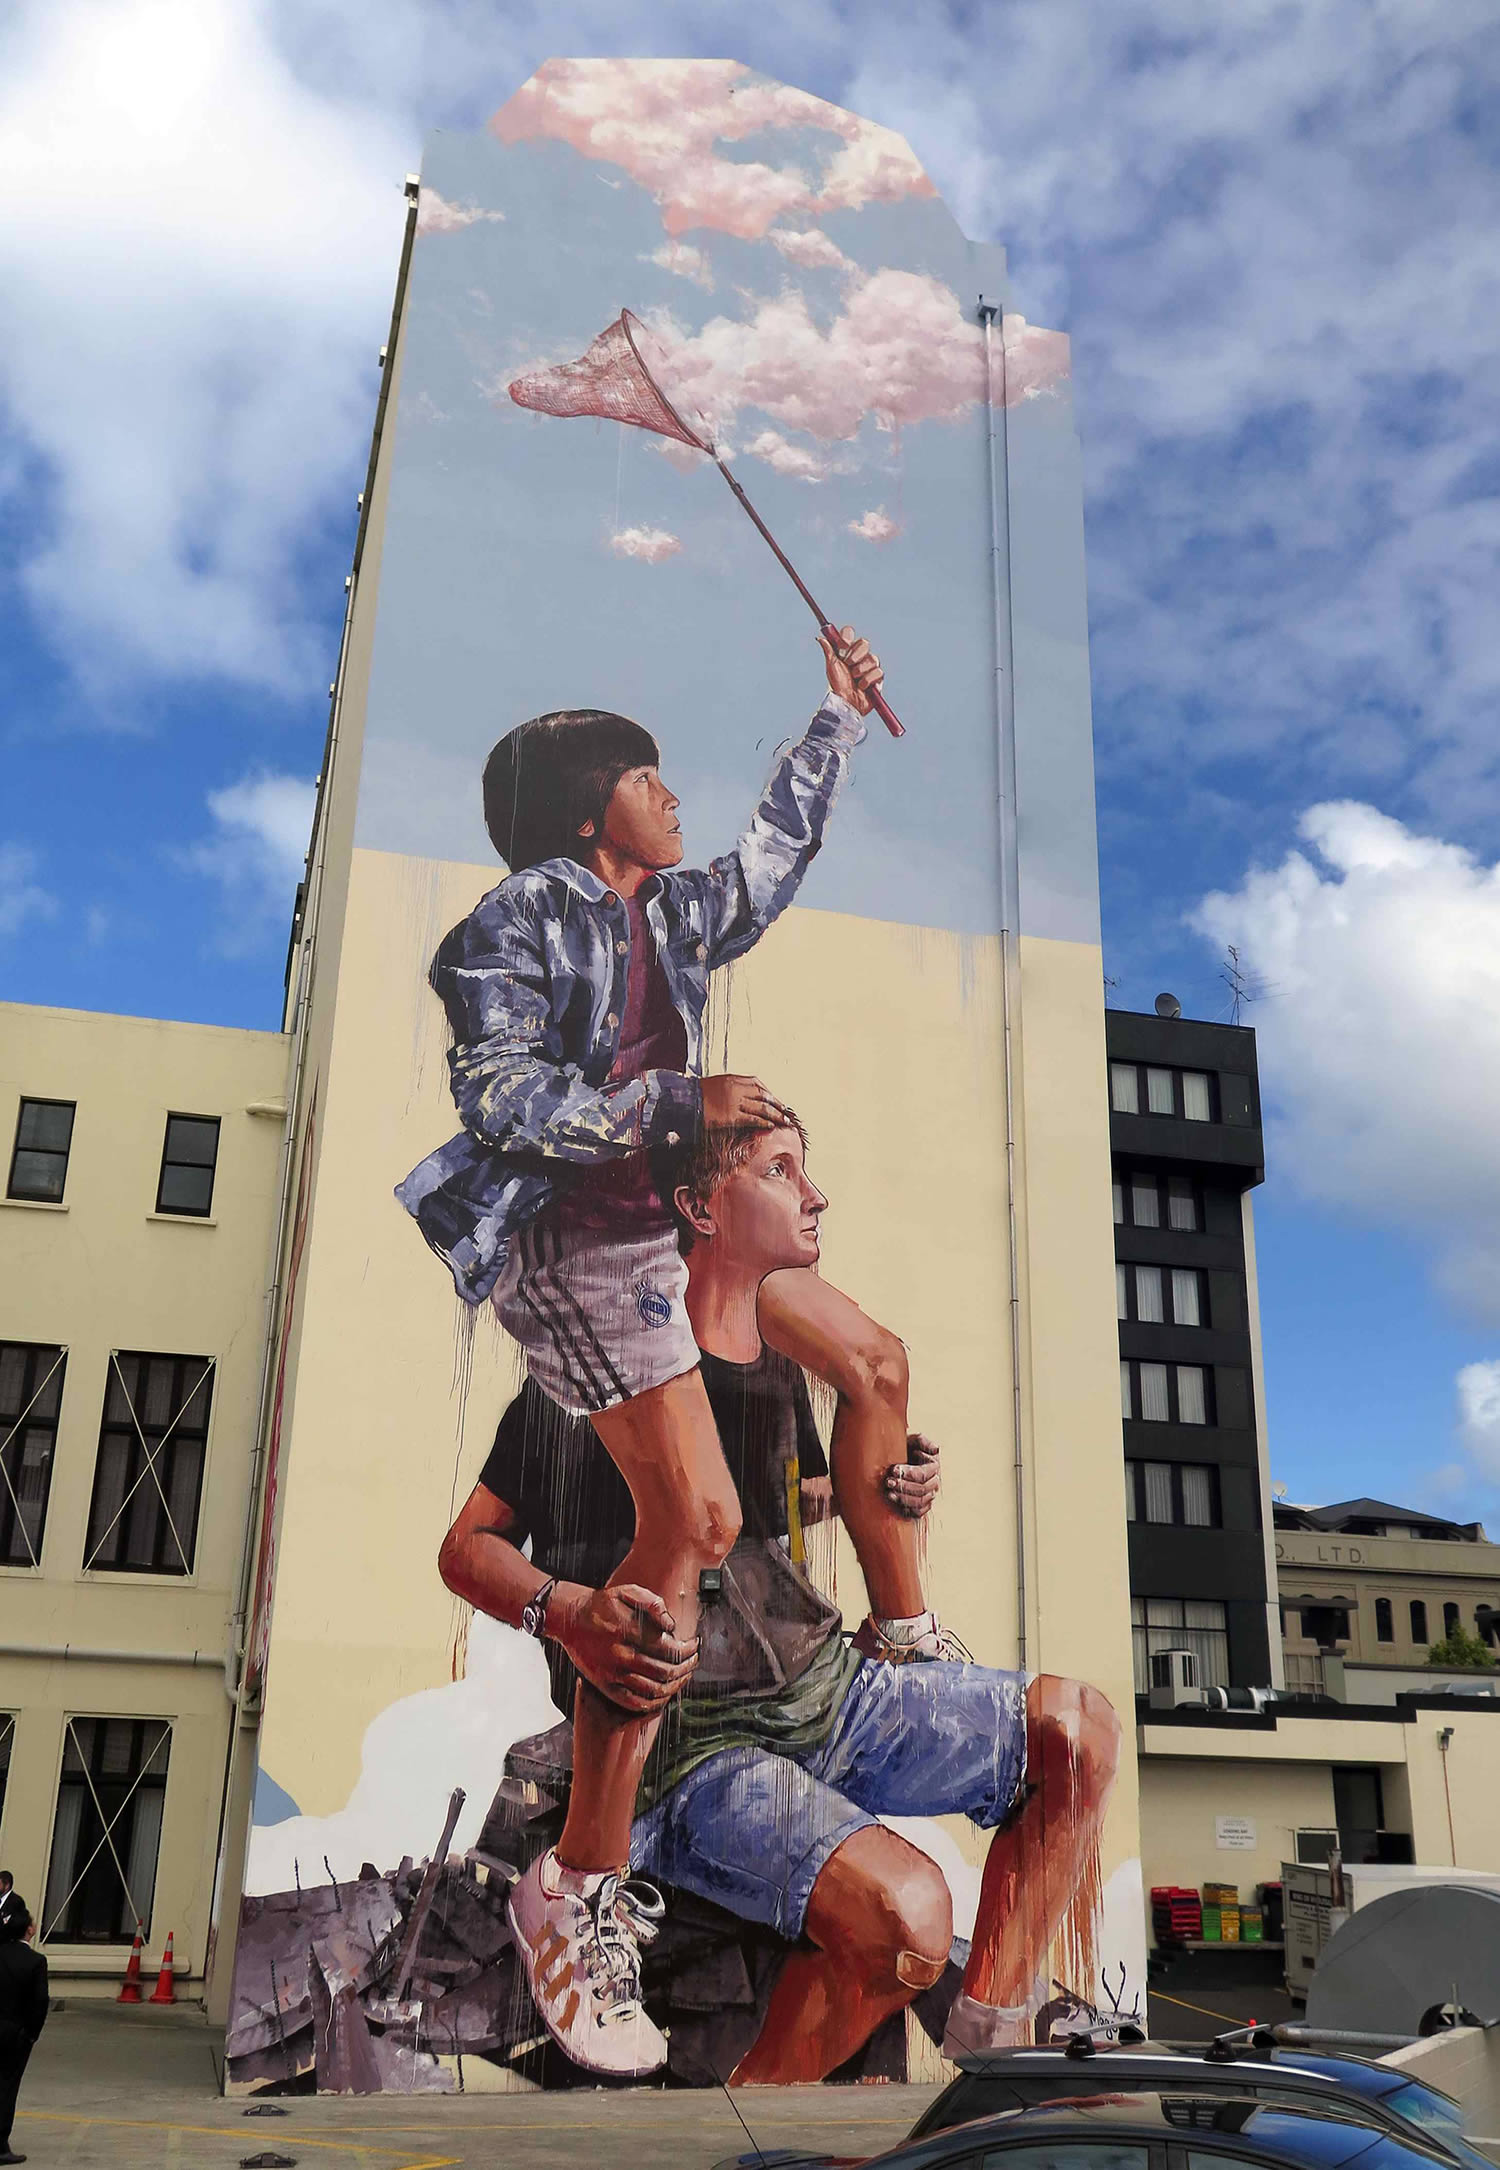 kid fishing for clouds, mural by fintan magee